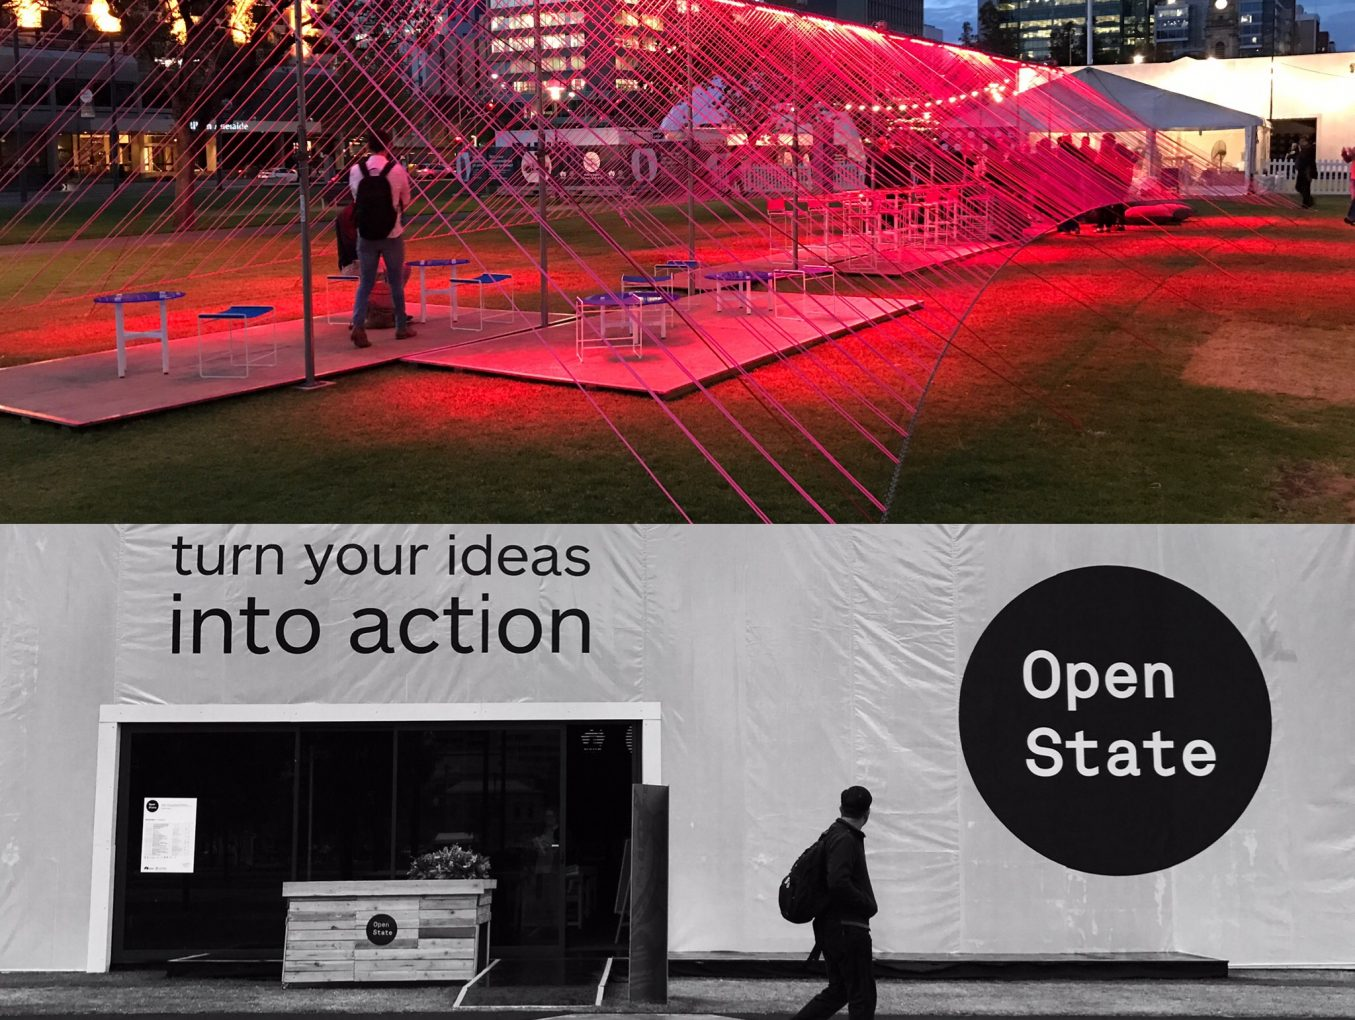 Open State Festival Adelaide: Alternative infill housing - Can citizen-led development regenerate cities and communities?